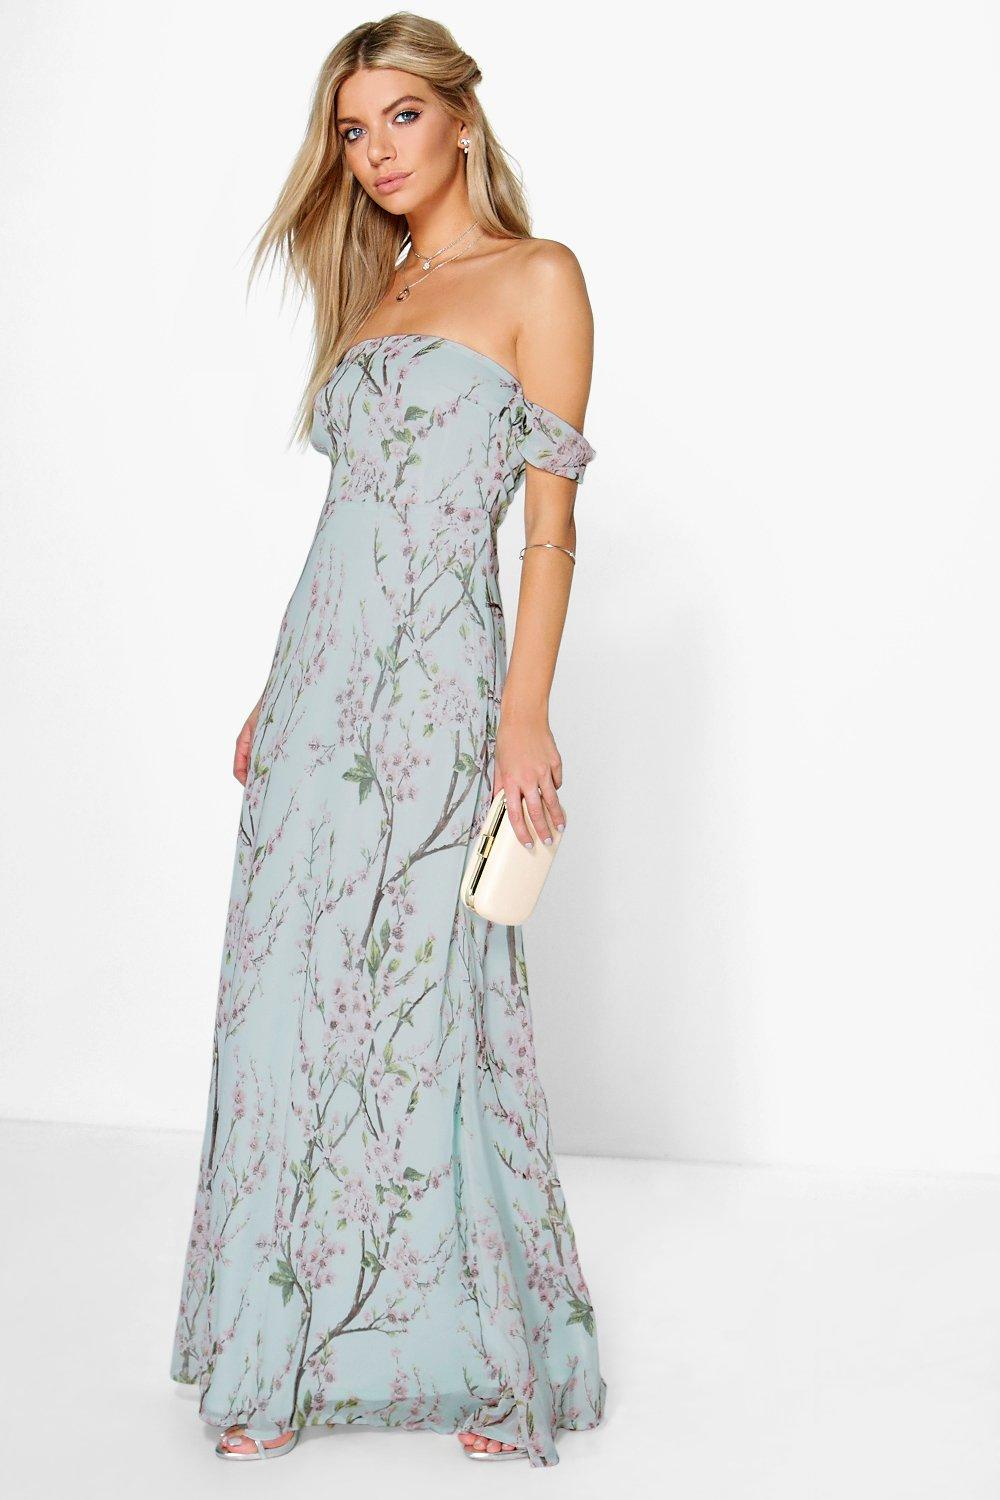 Jessica Floral Off The Shoulder Maxi Dress at boohoo.com